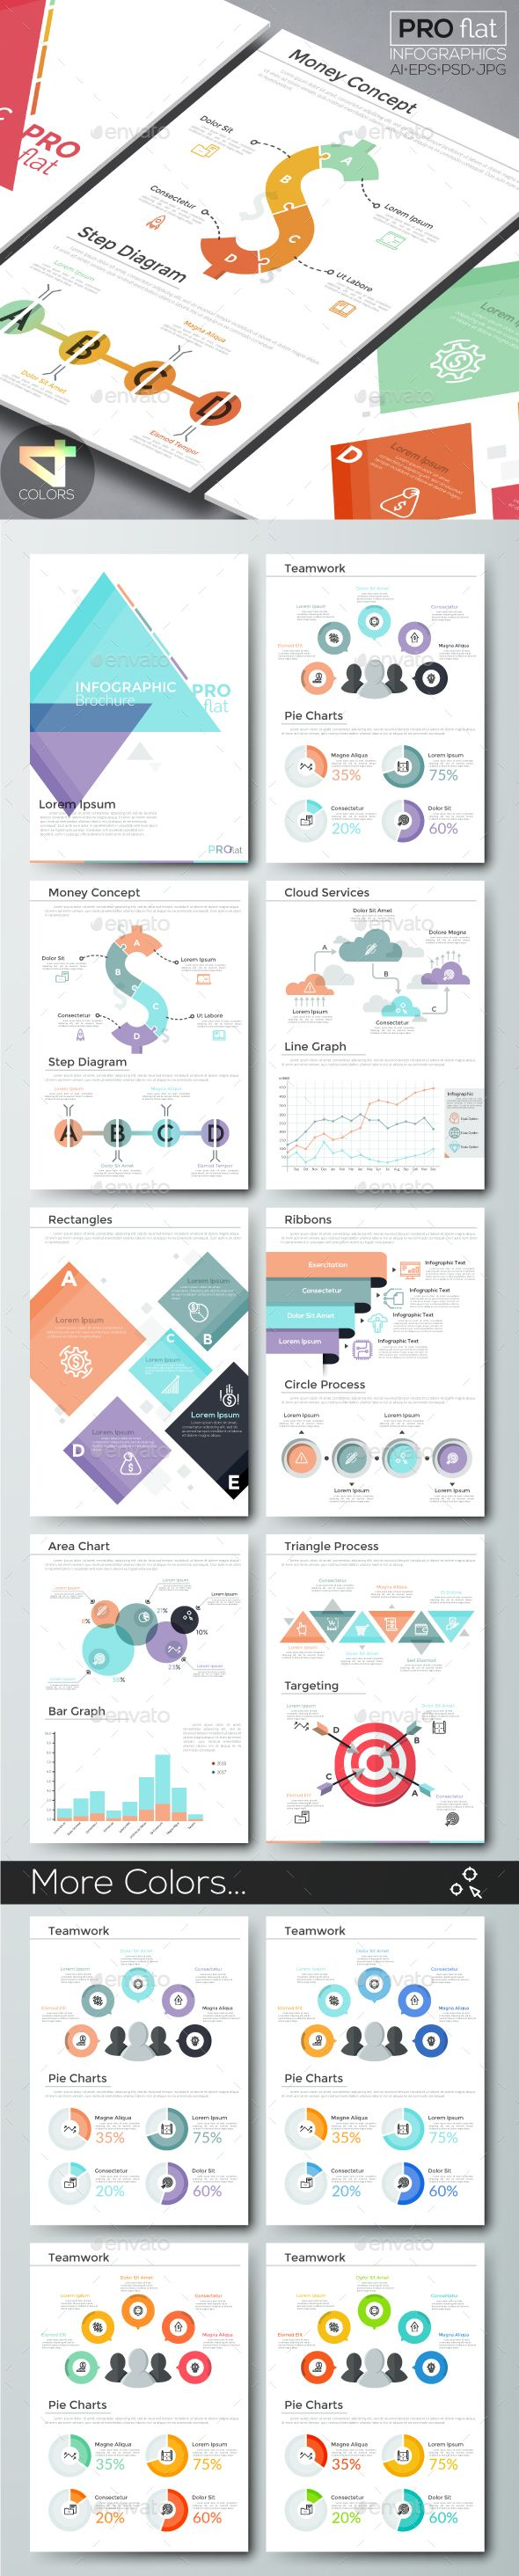 Pro Flat Infographic Brochure Versions Infographic - Infographic brochure template